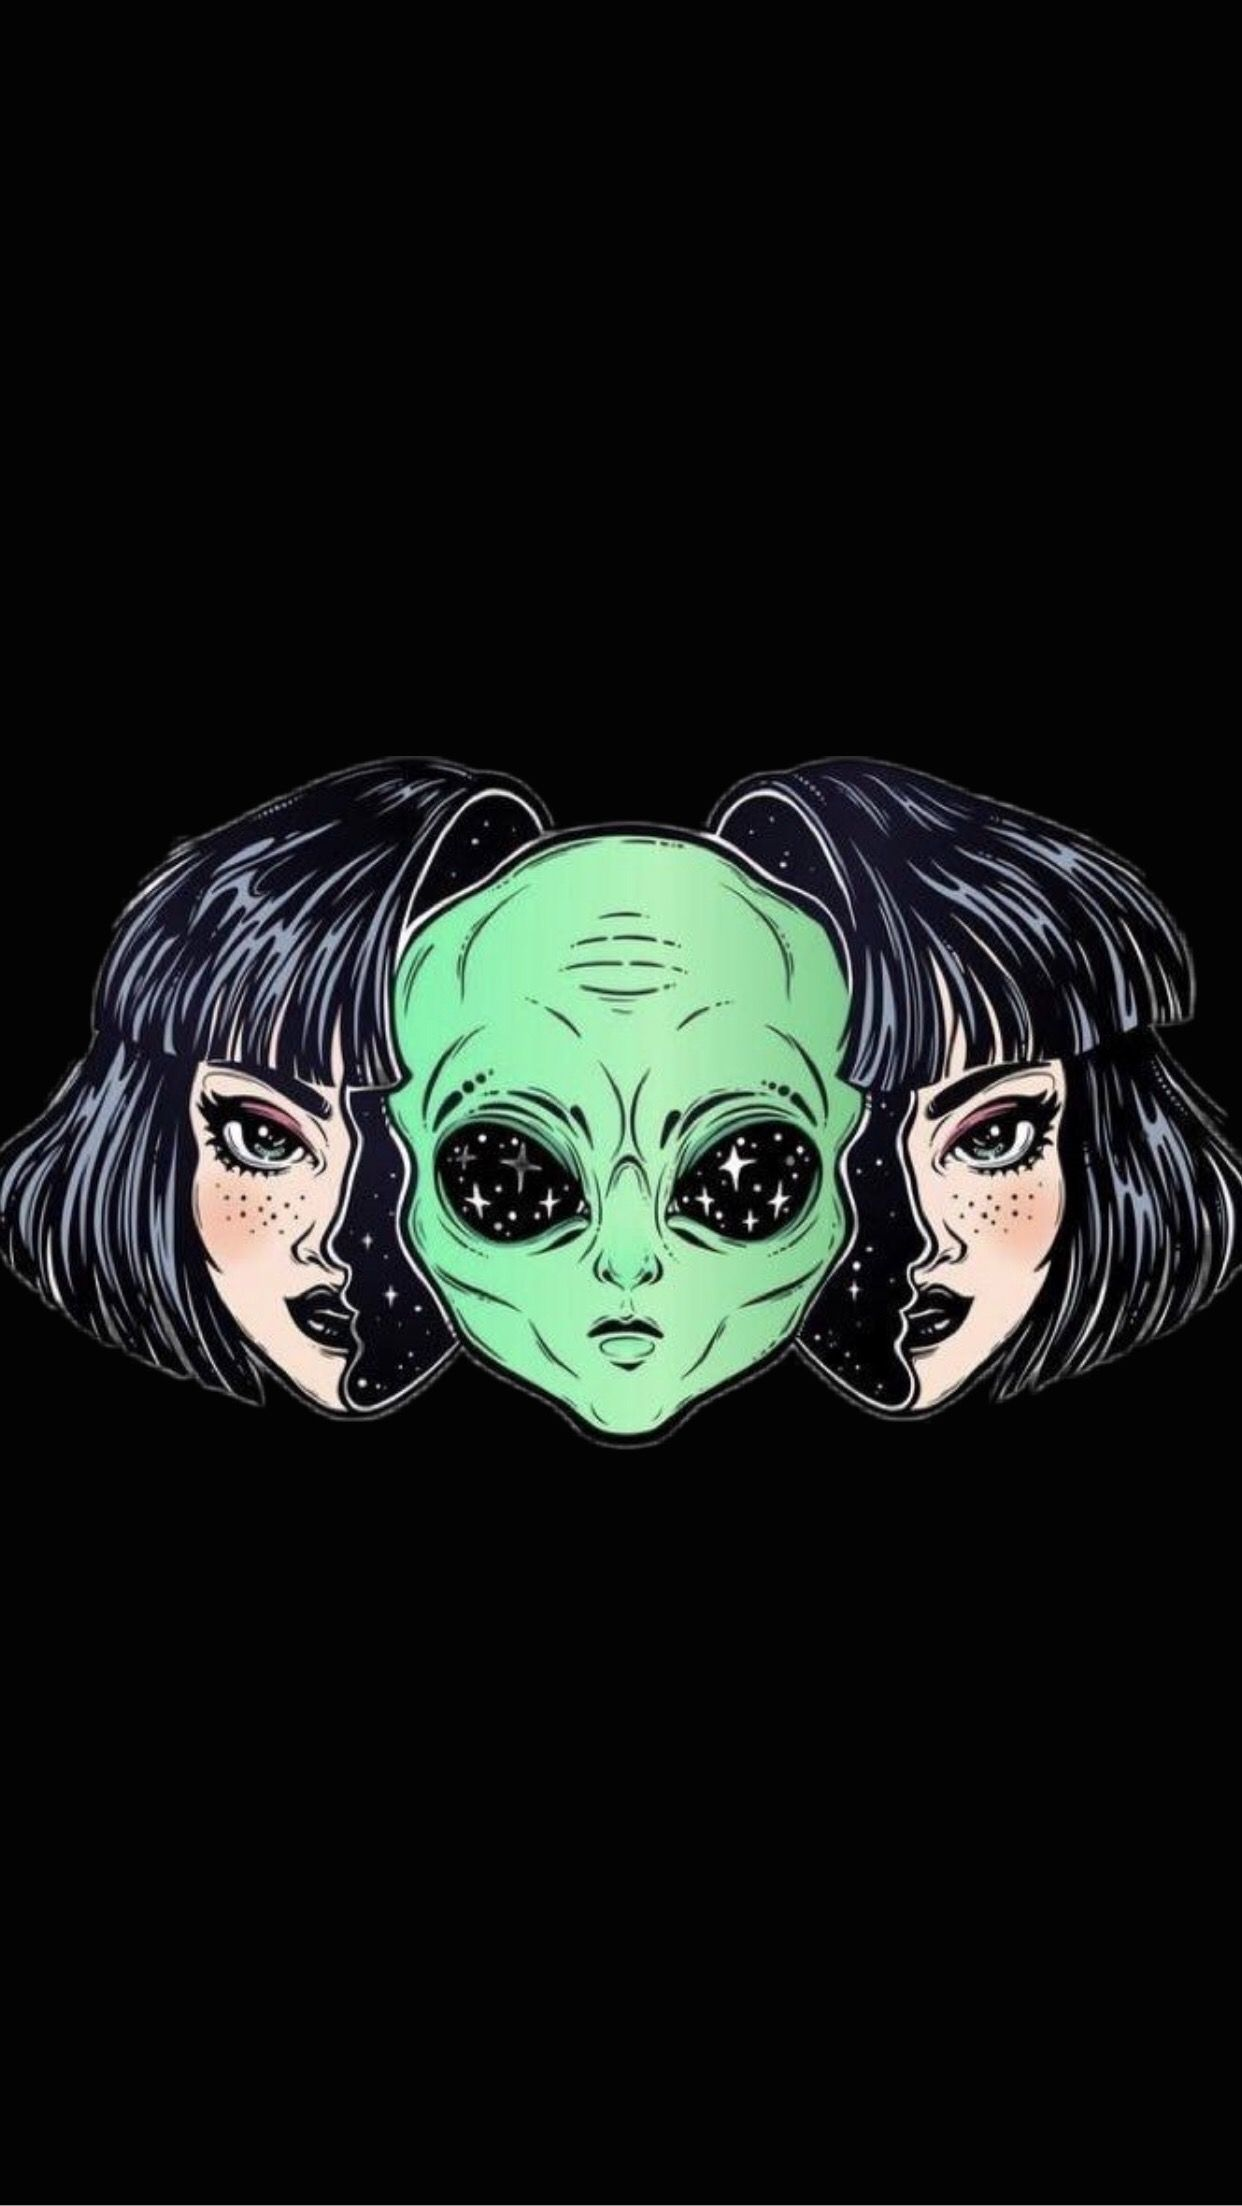 Anime Alien Girl alien girl wallpapers - top free alien girl backgrounds